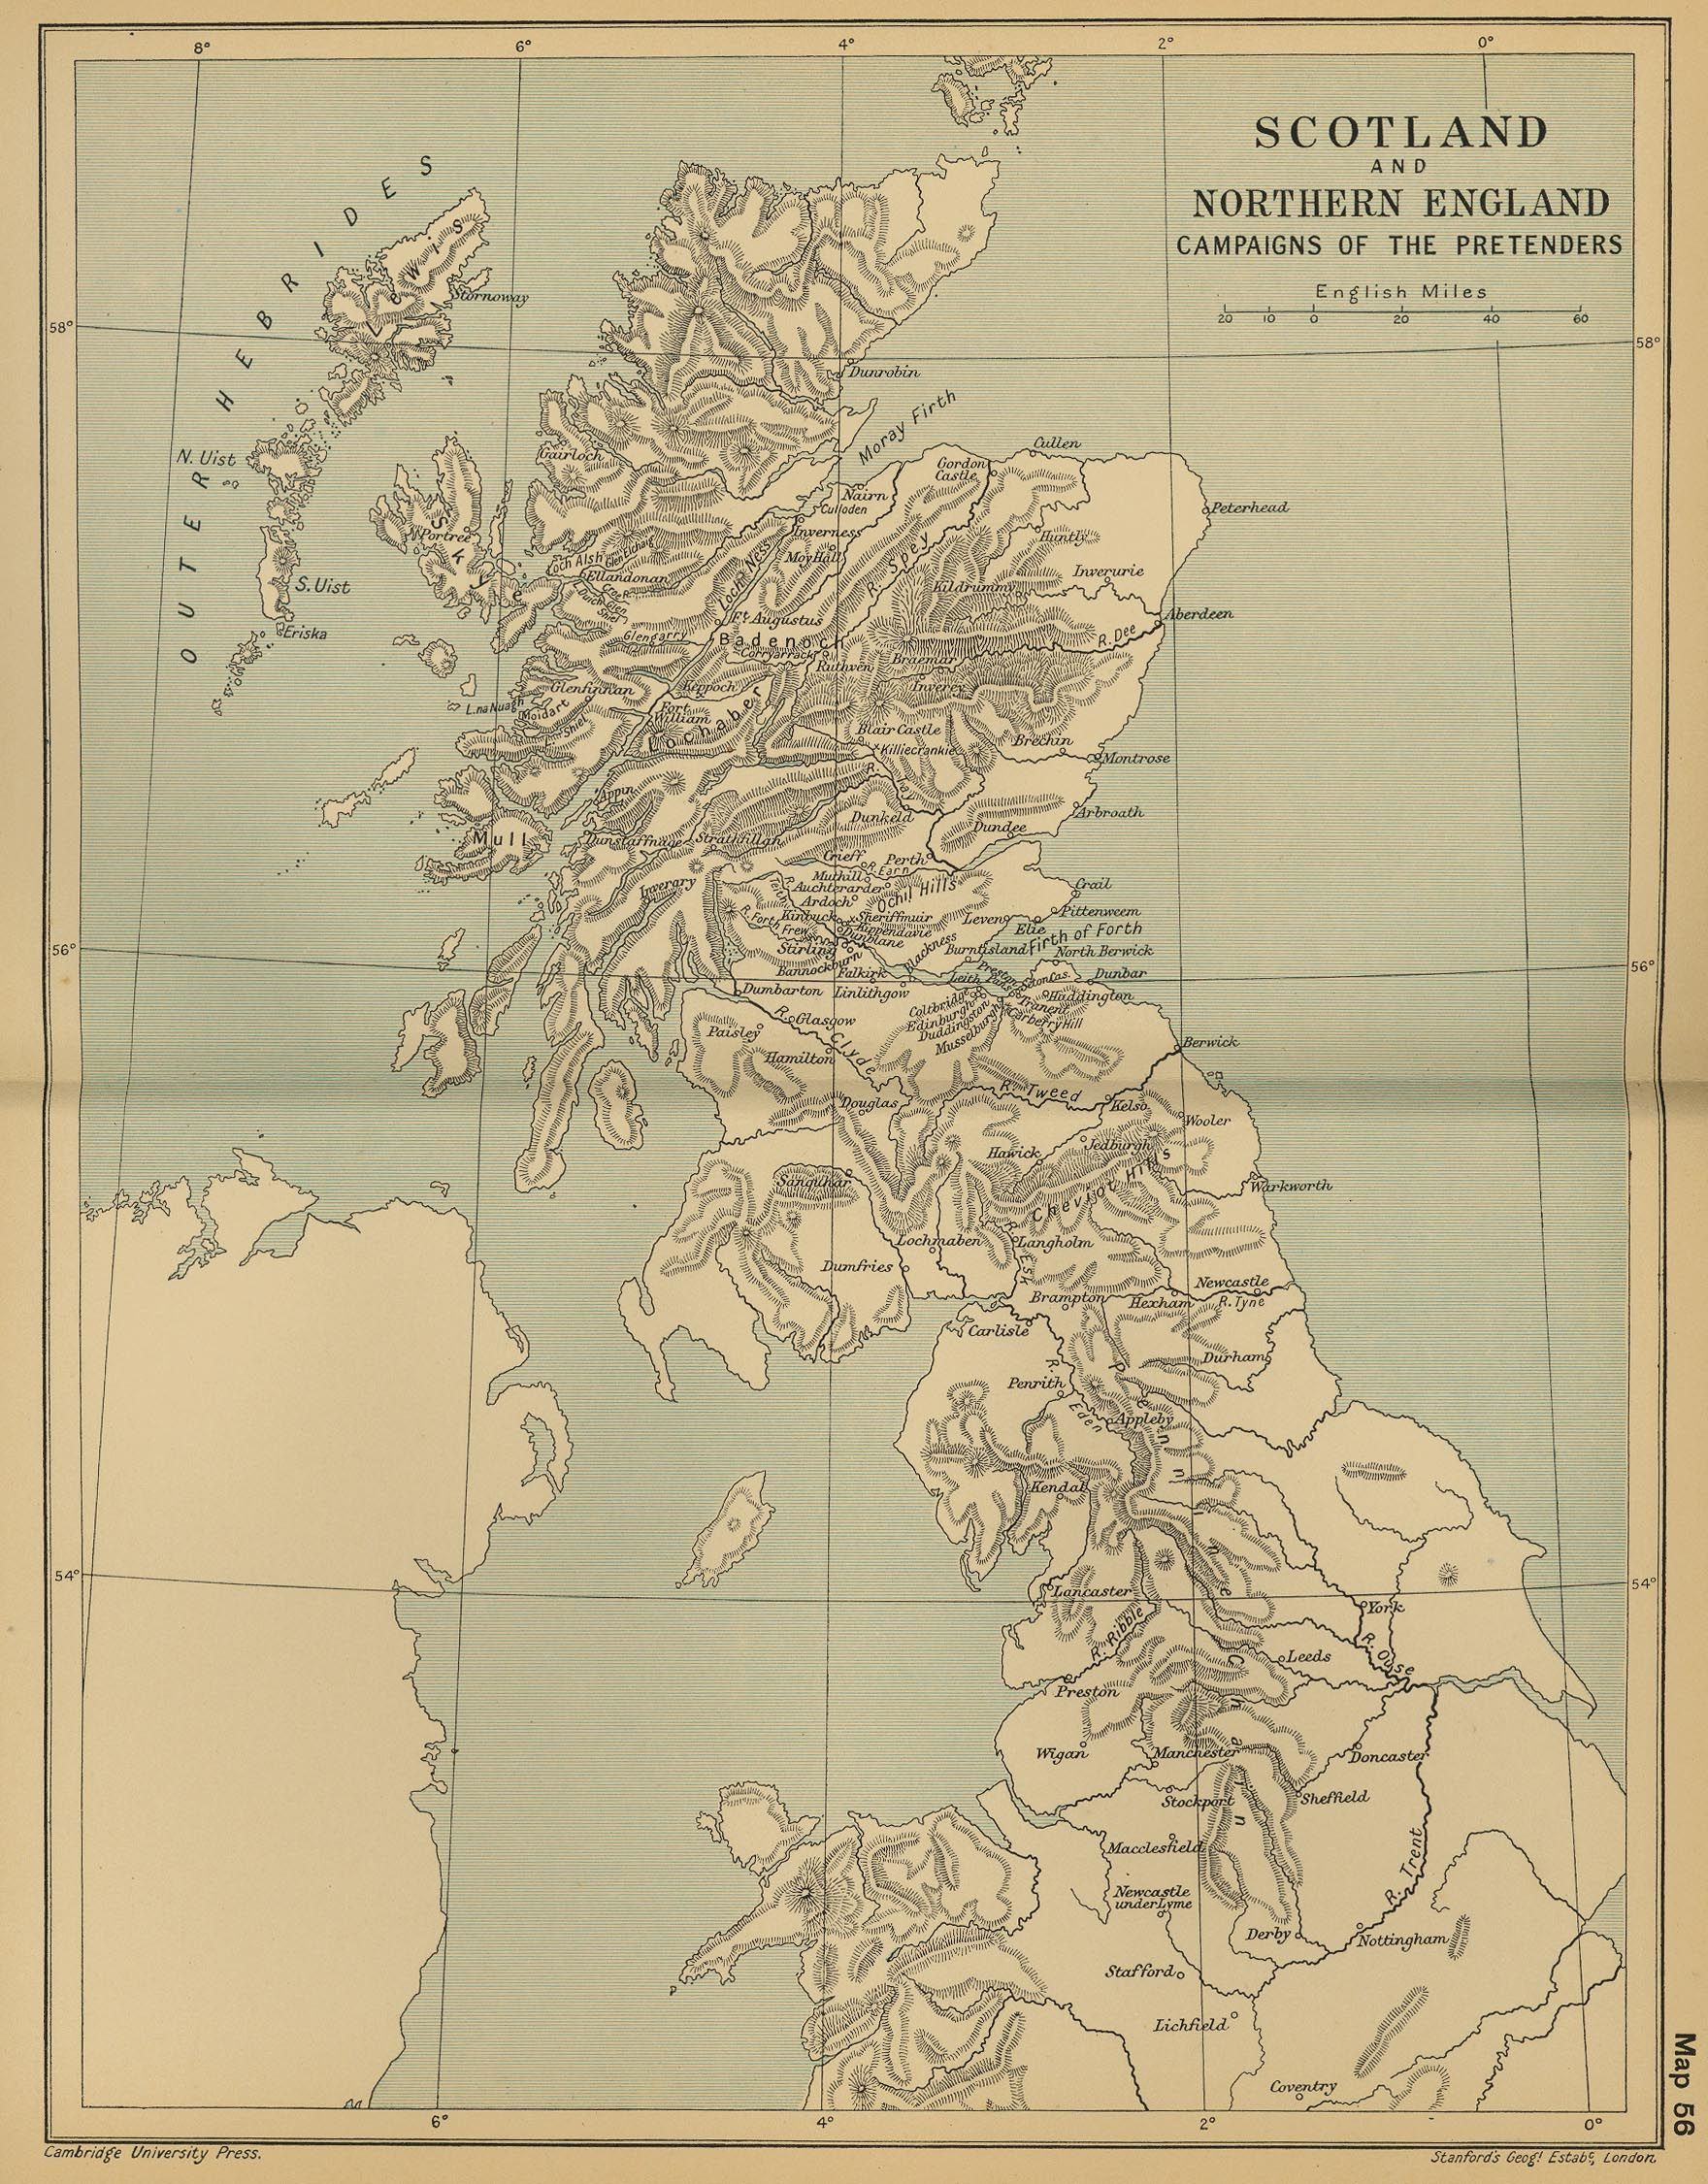 Map of Scotland 1708 | ∙∙ write ∙ Metanoia ∙∙ | Map, Historical